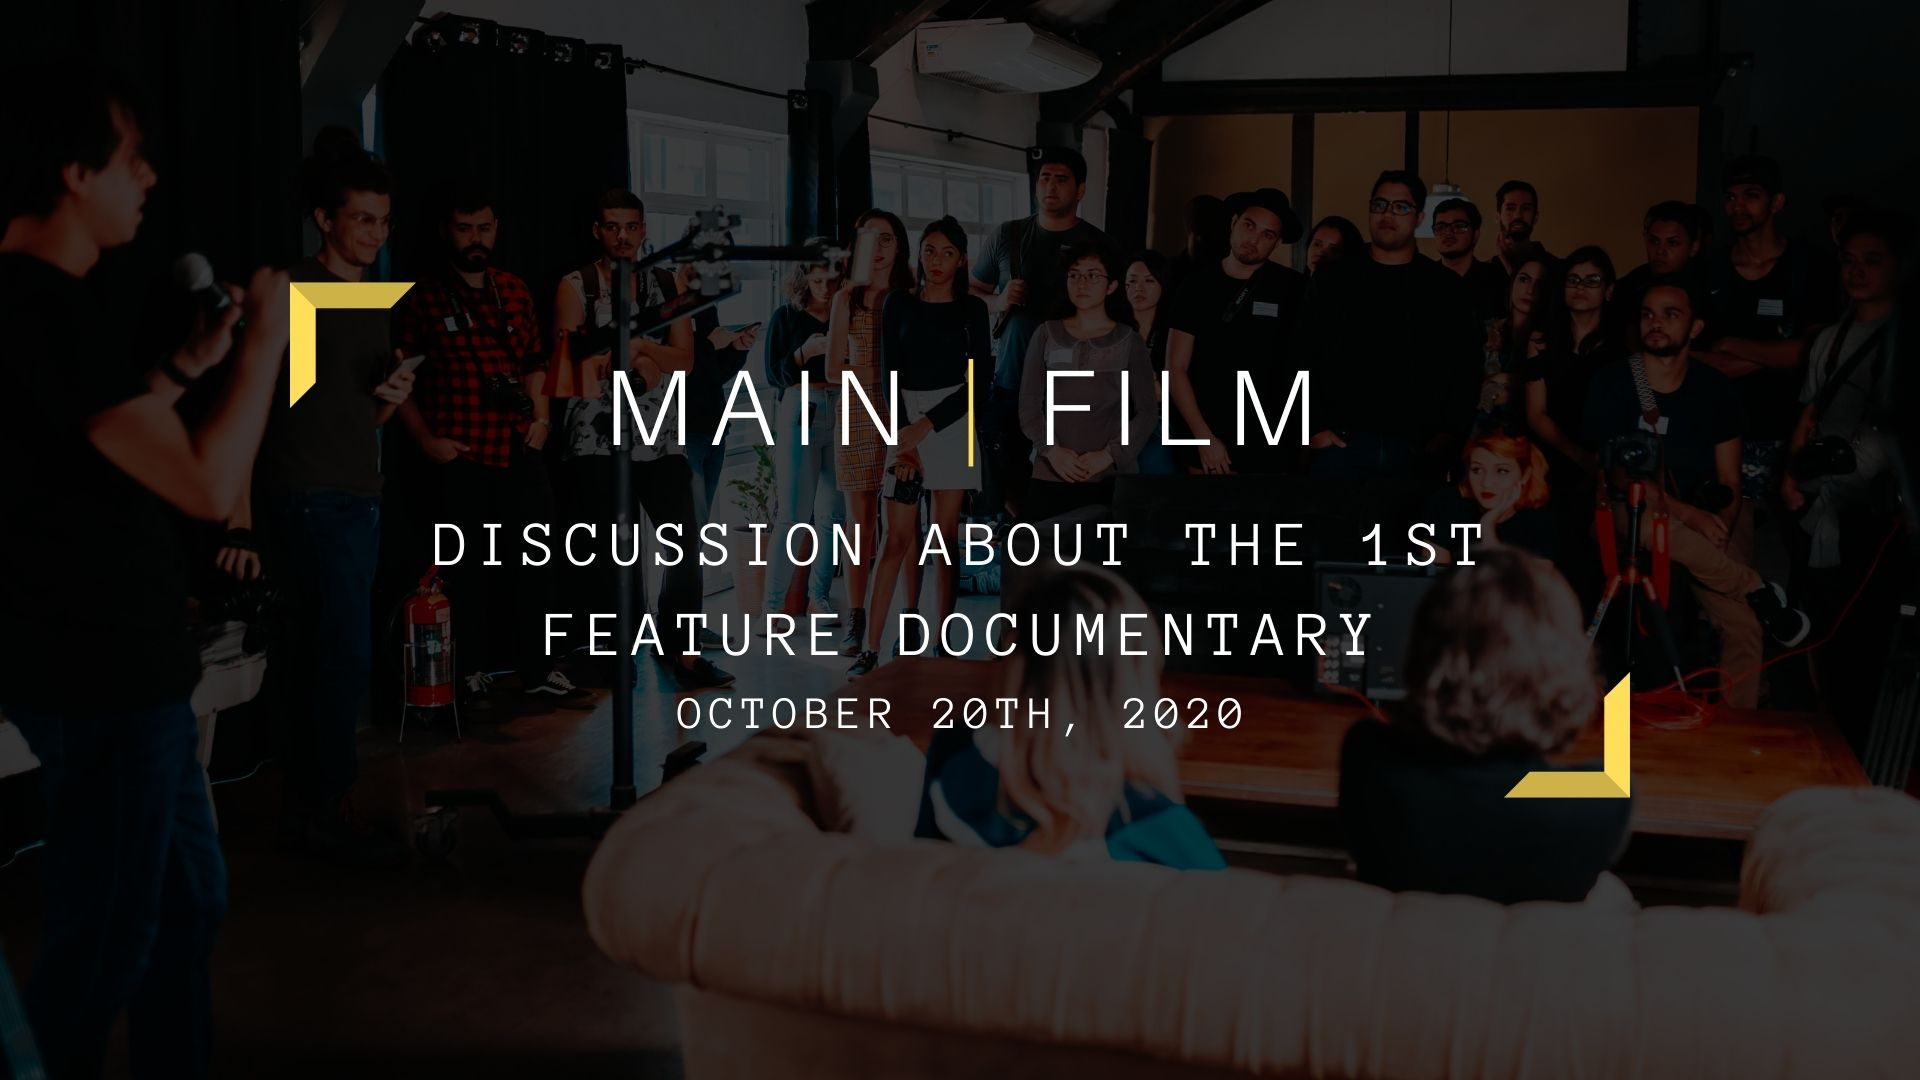 Discussion about the 1st feature documentary